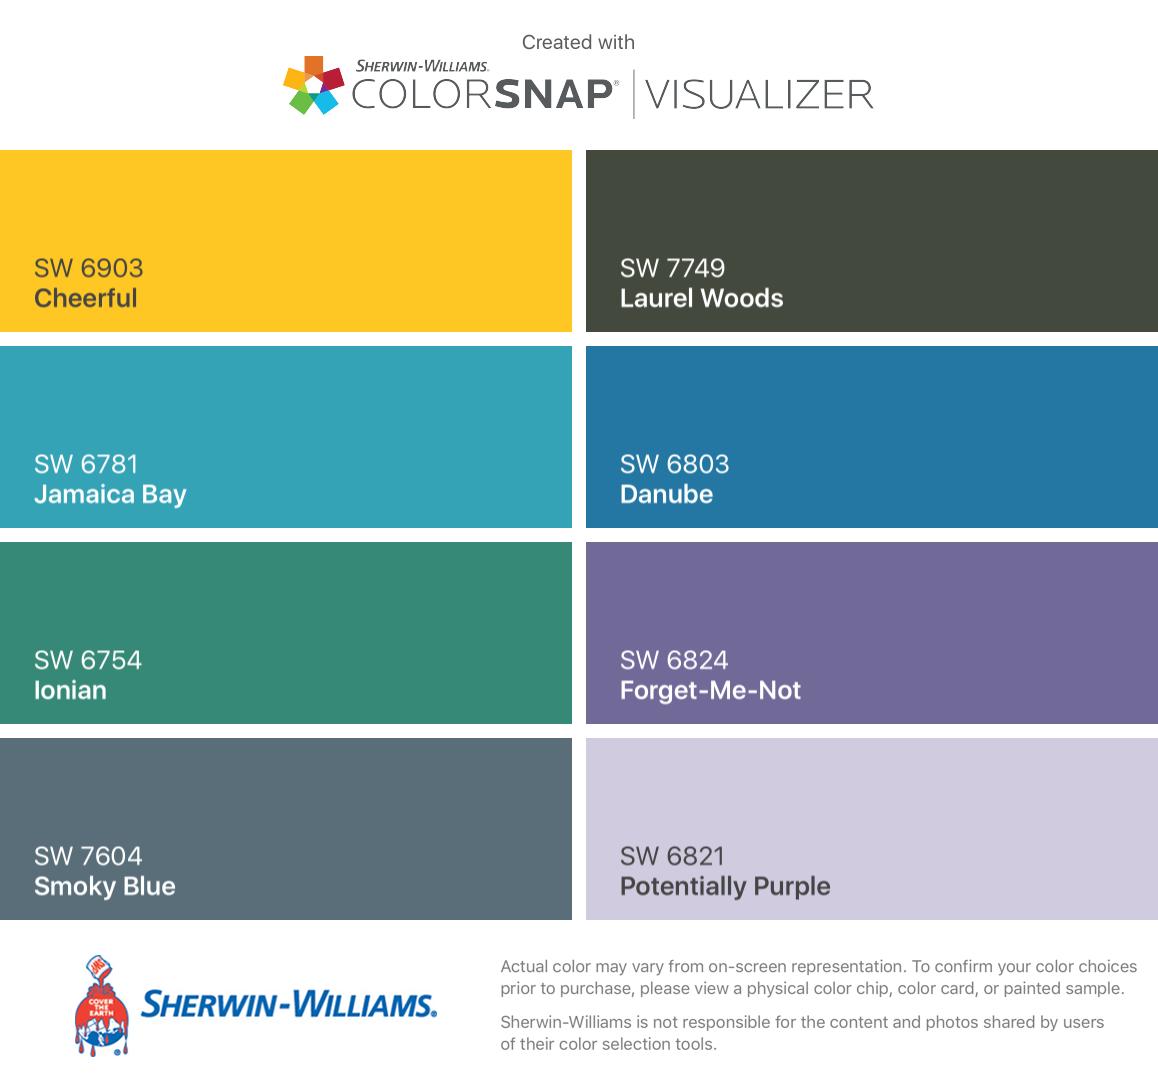 I Found These Colors With Colorsnap Visualizer For Iphone By Sherwin Williams Chee Exterior Paint Colors For House House Paint Exterior Paint Colors For Home,Bathroom Backsplashes